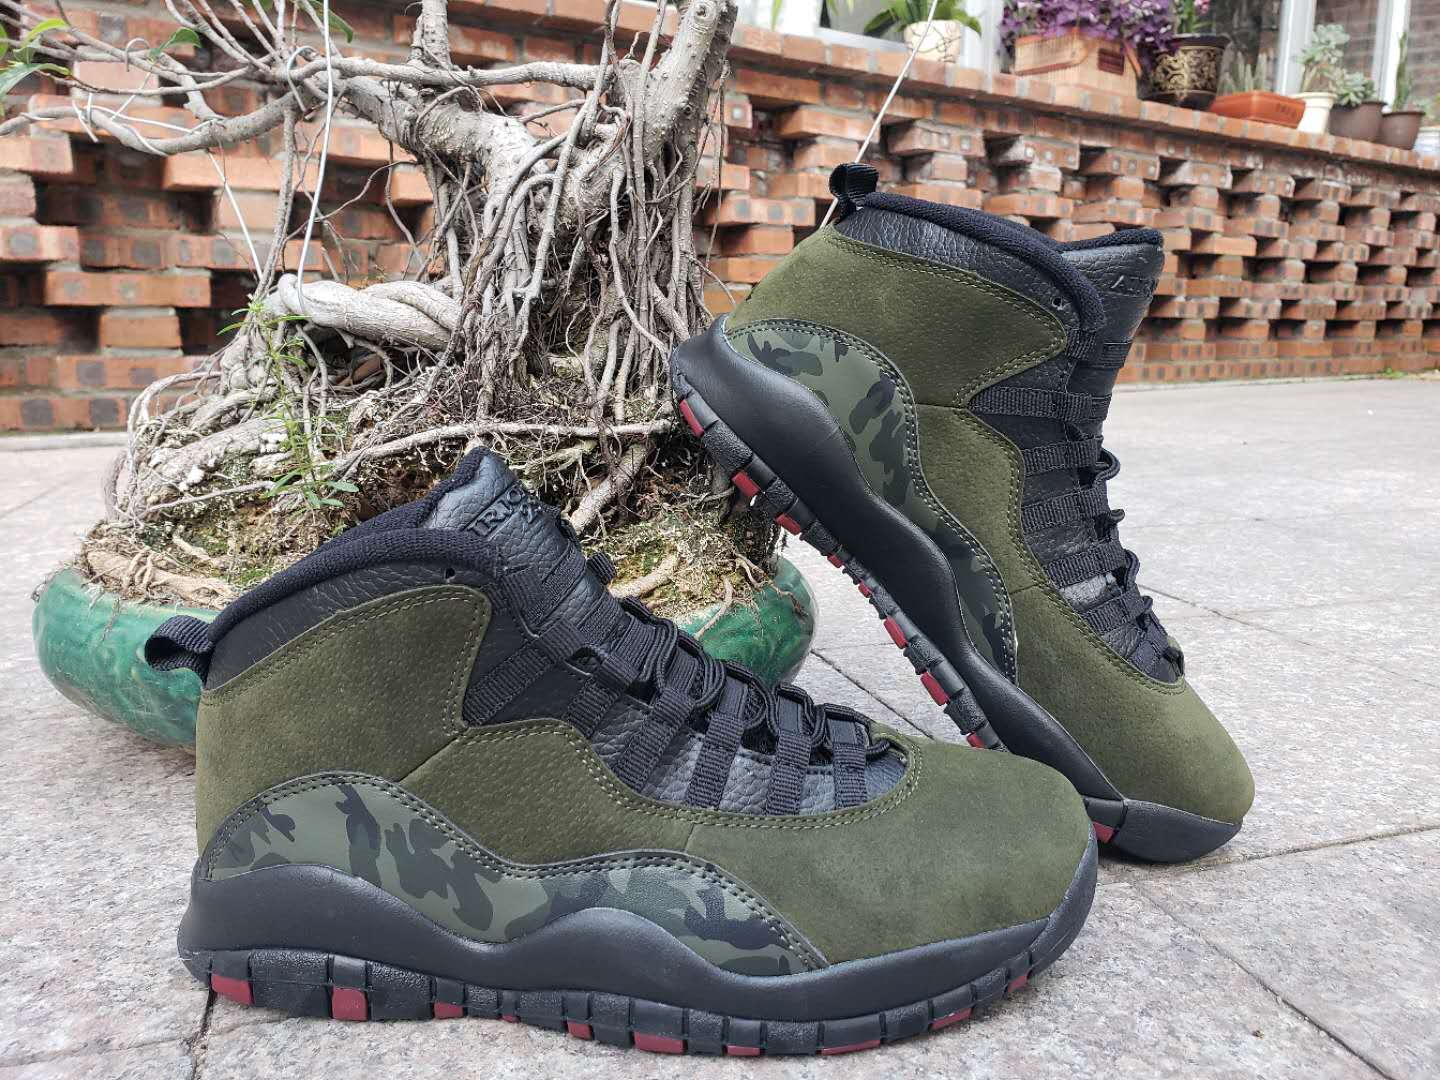 Jordan Shoes 10 Army Green Camo For Cheap